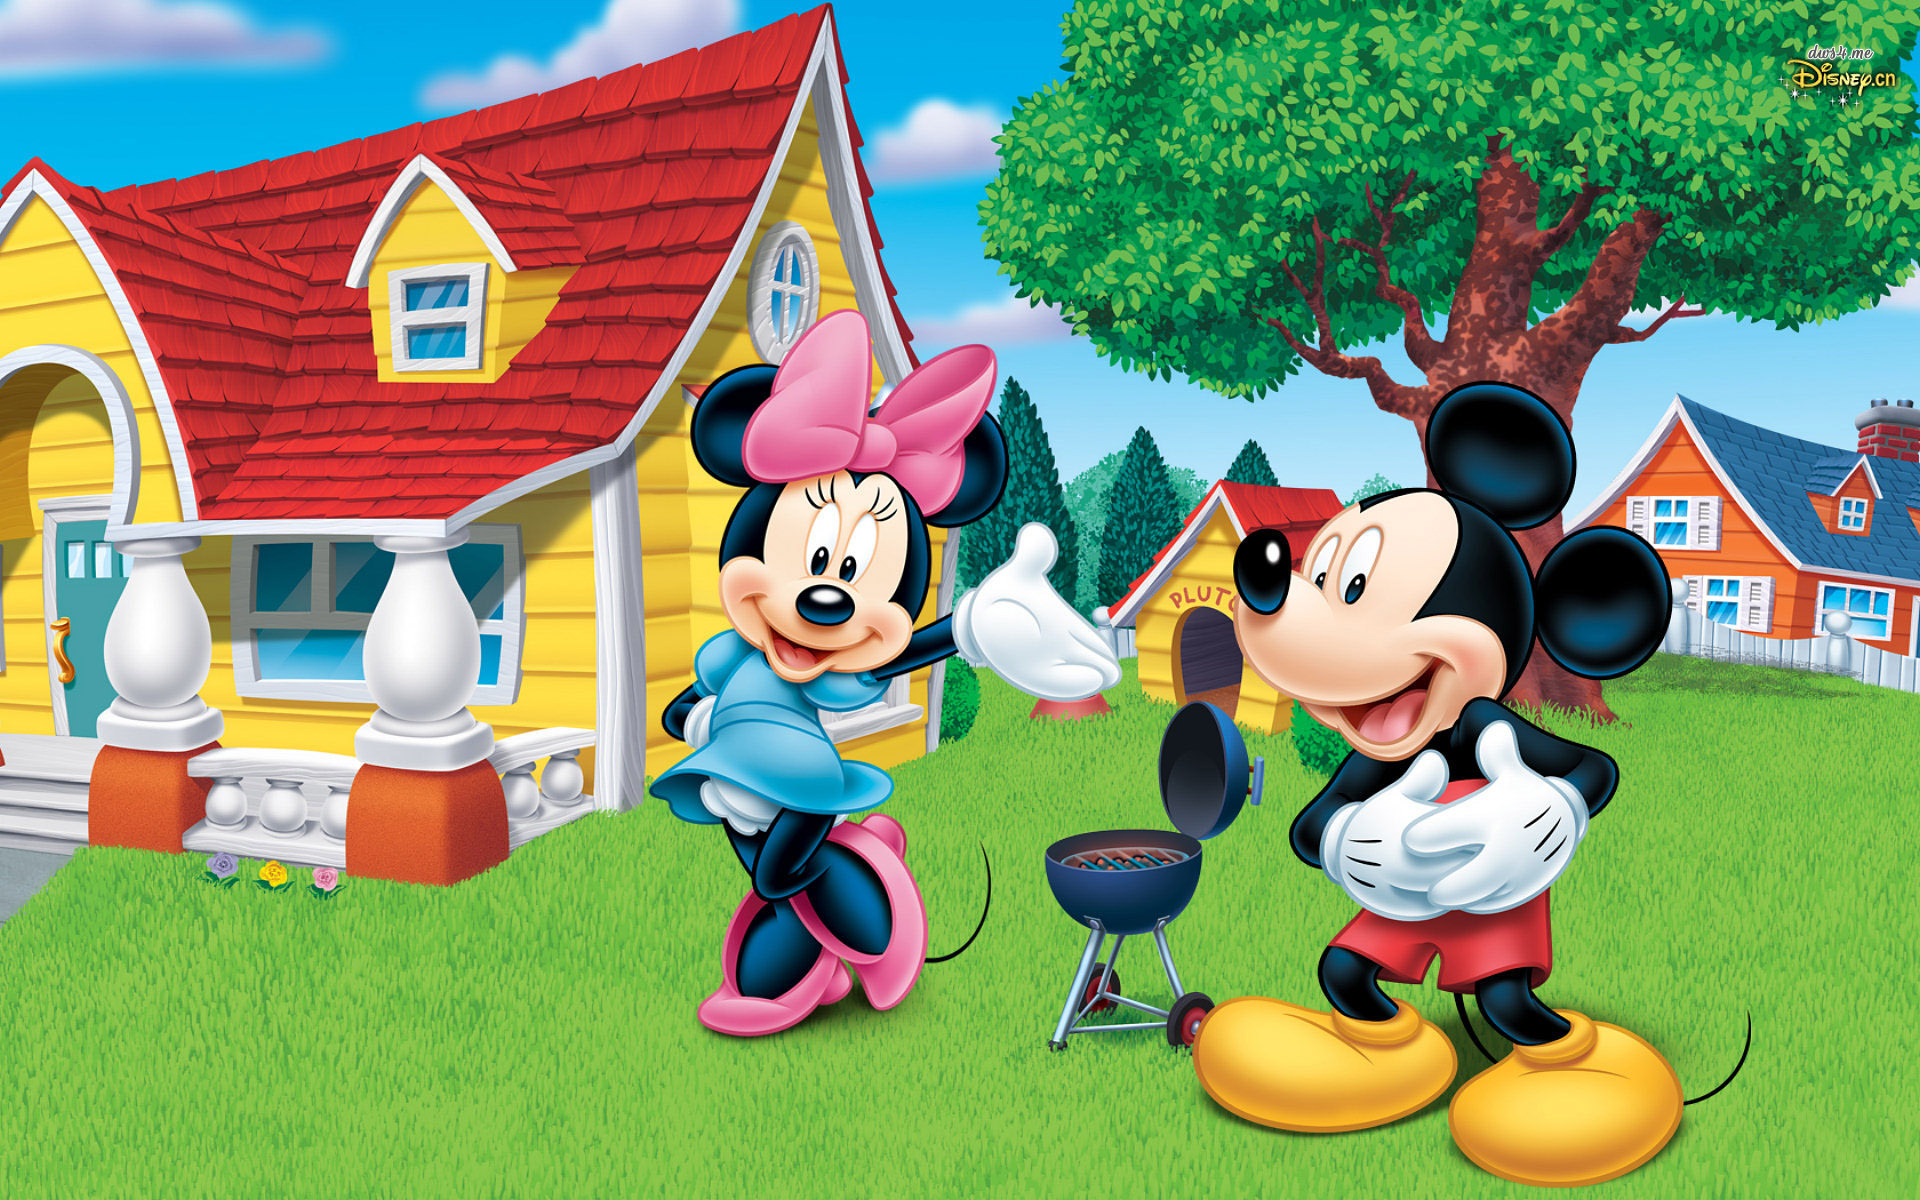 Mickey Mouse Wallpaper For Home